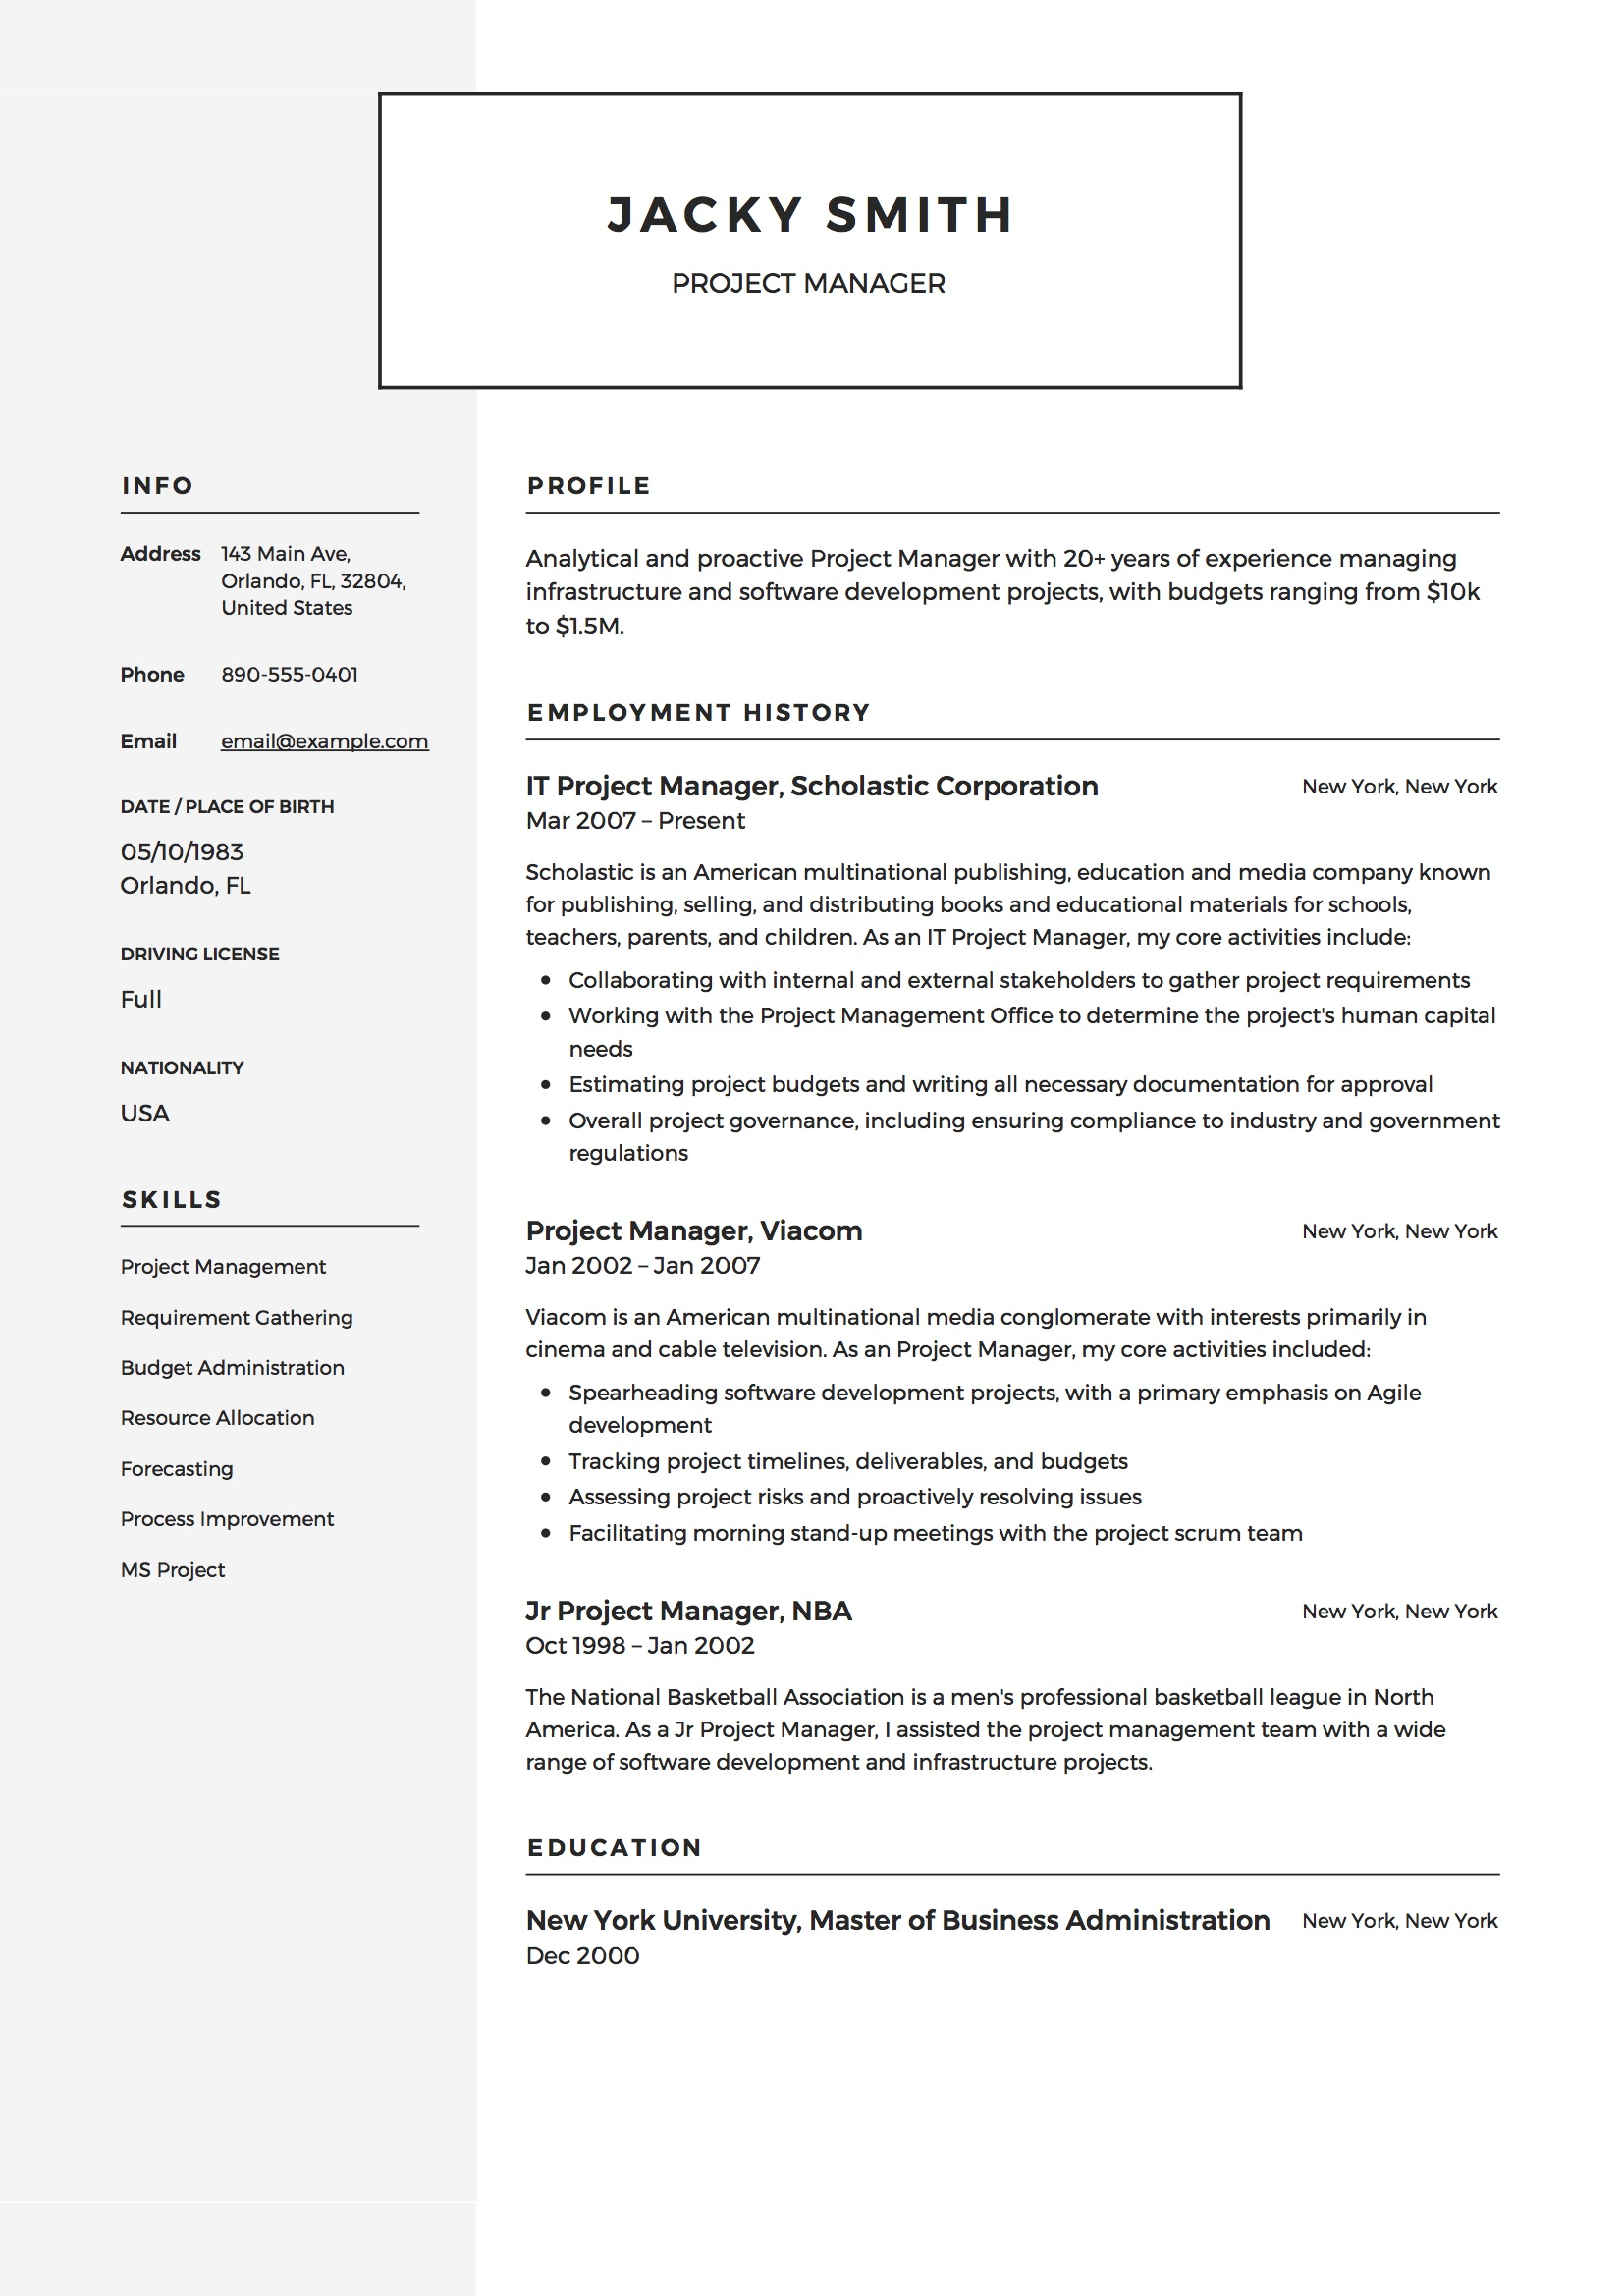 project manager resume examples full guide pdf word example retail template envato skills Resume Project Manager Resume Examples 2018